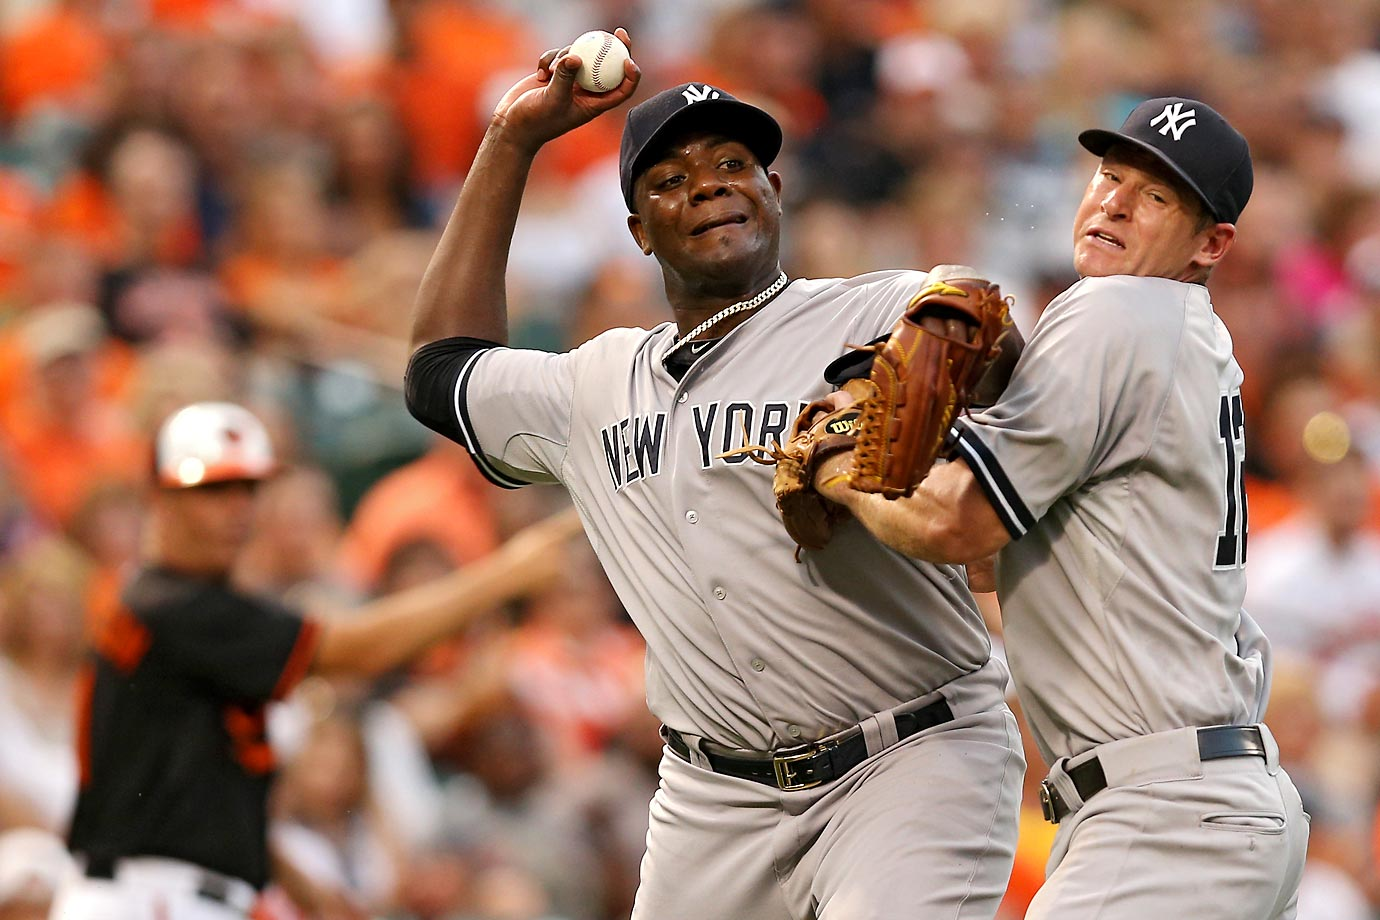 Michael Pineda of the New York Yankees collides with Chase Headley as he tries to throw out Jimmy Paredes of the Baltimore Orioles.